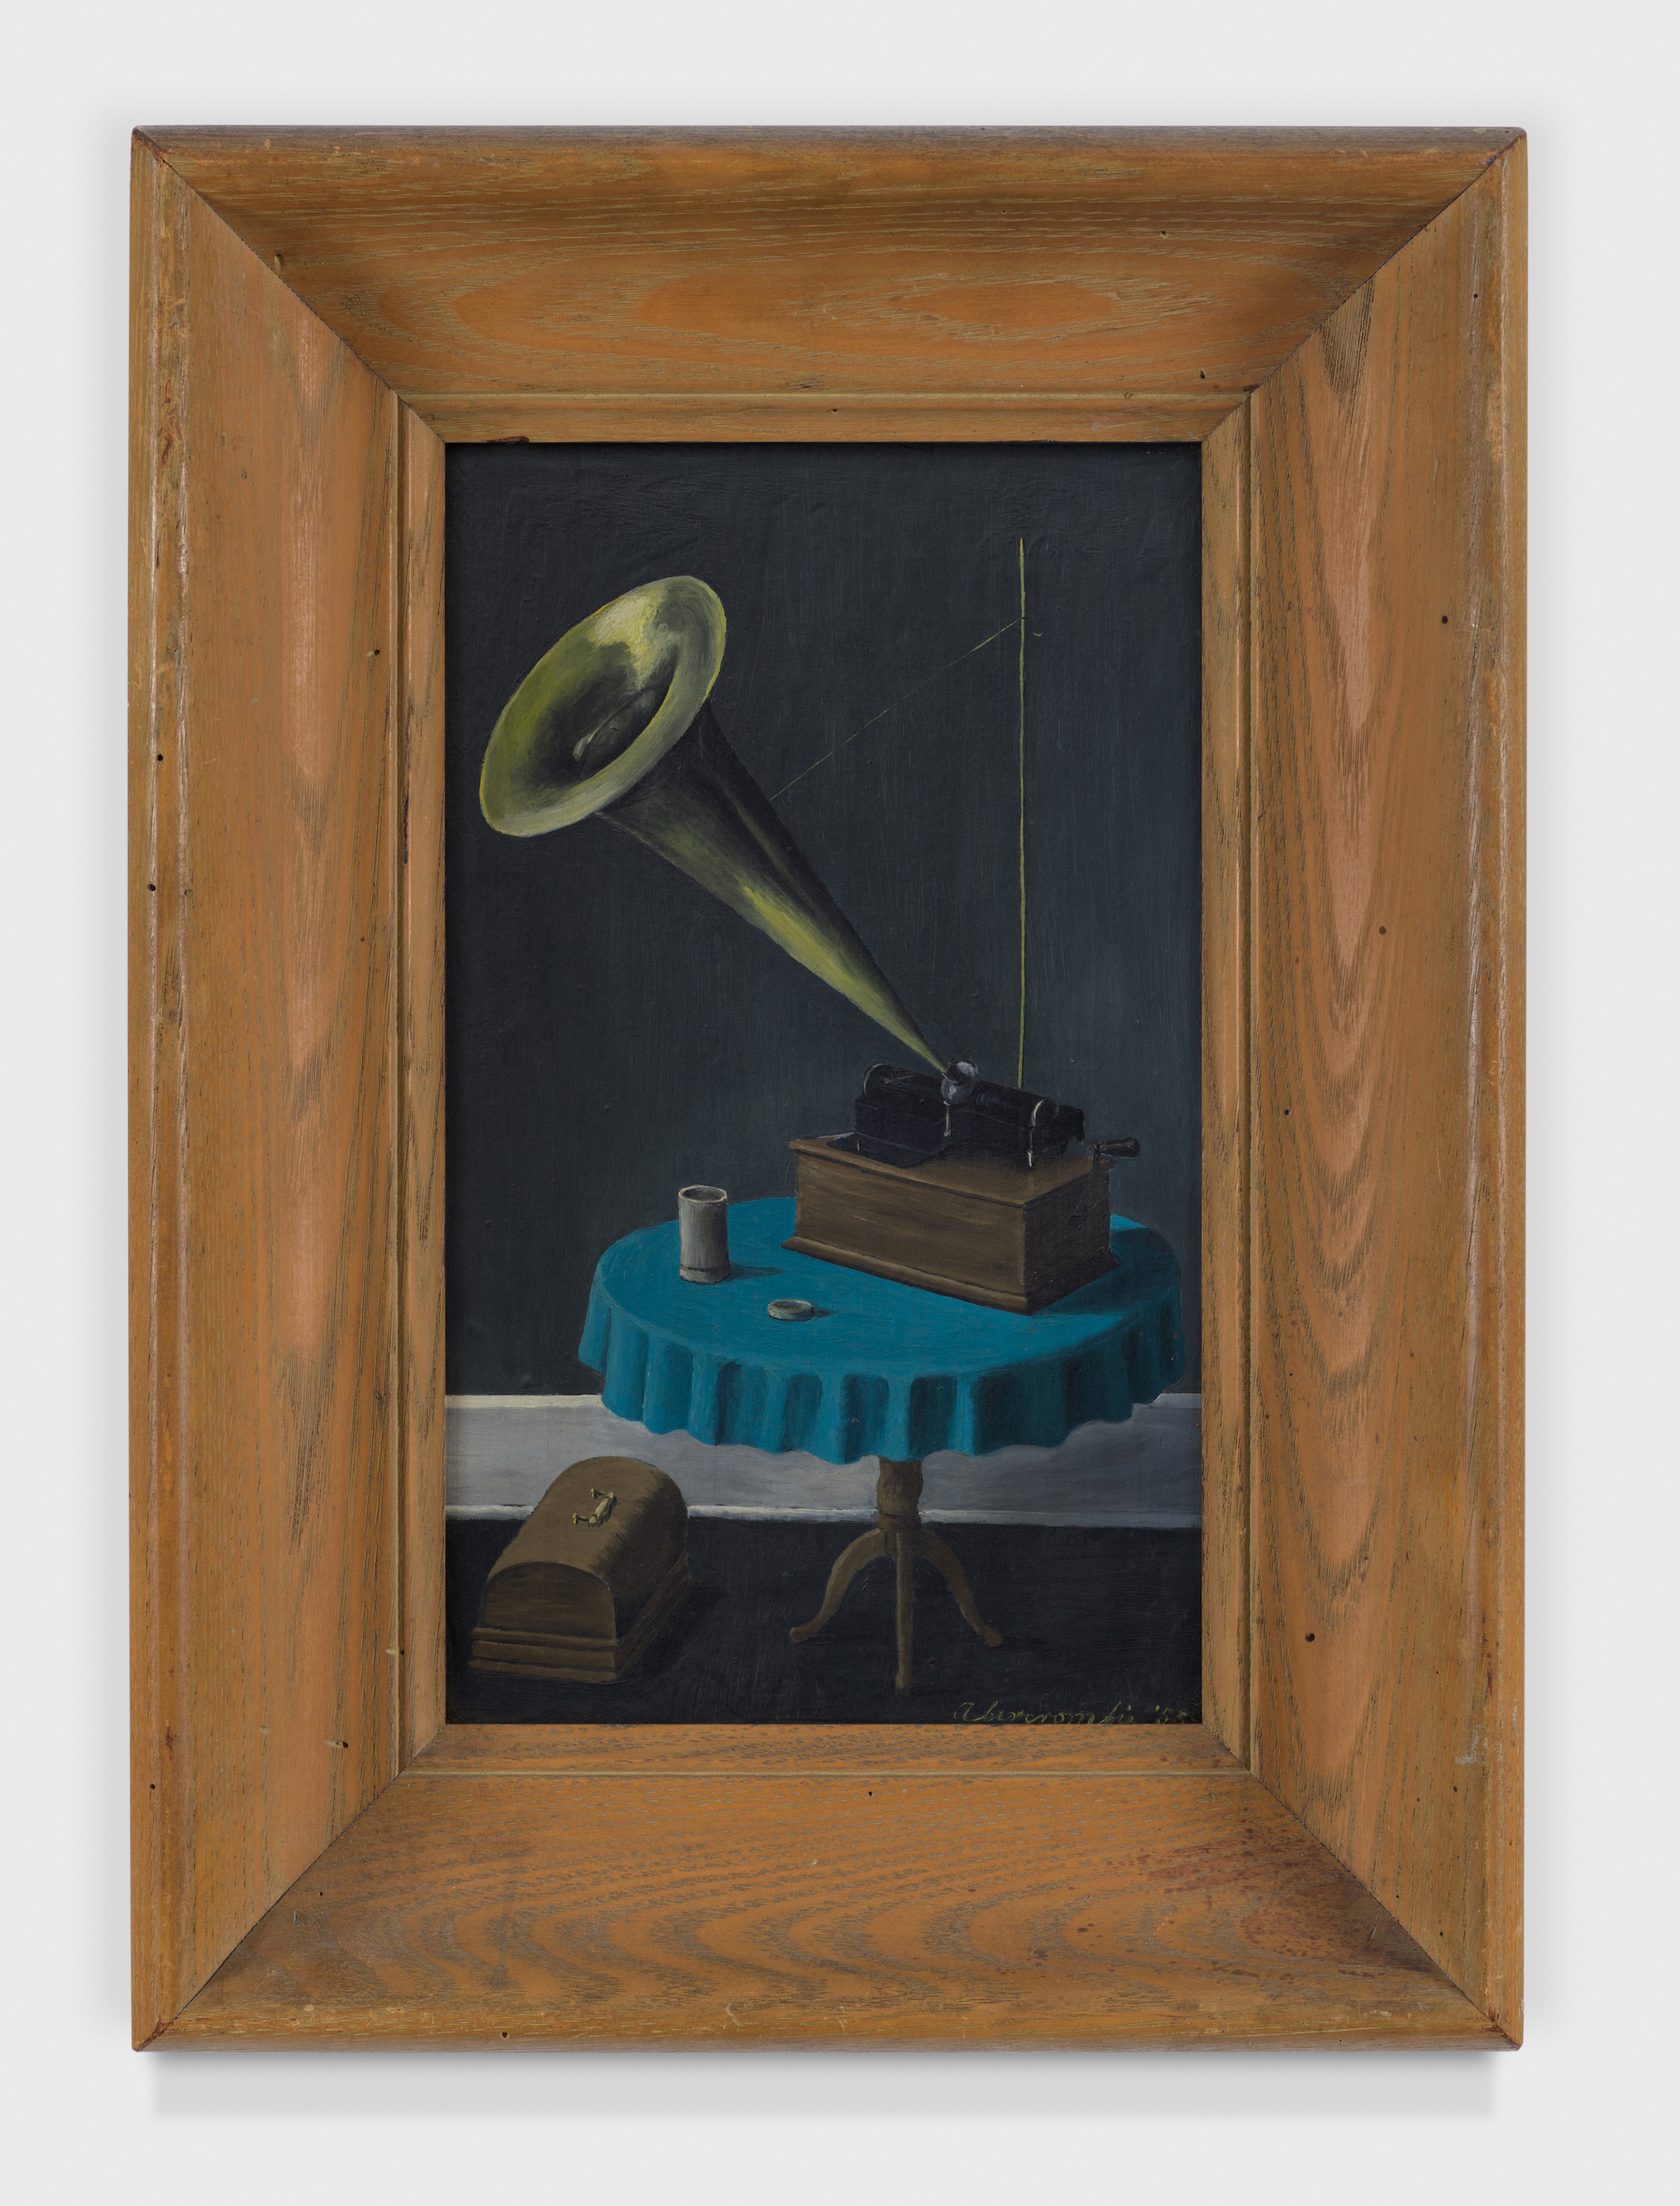 Small Phonograph,  1955, Oil on masonite, 10 3/4 × 6 3/4 inches (unframed); 16 × 11 1/2 inches (framed). Collection of August Becker.